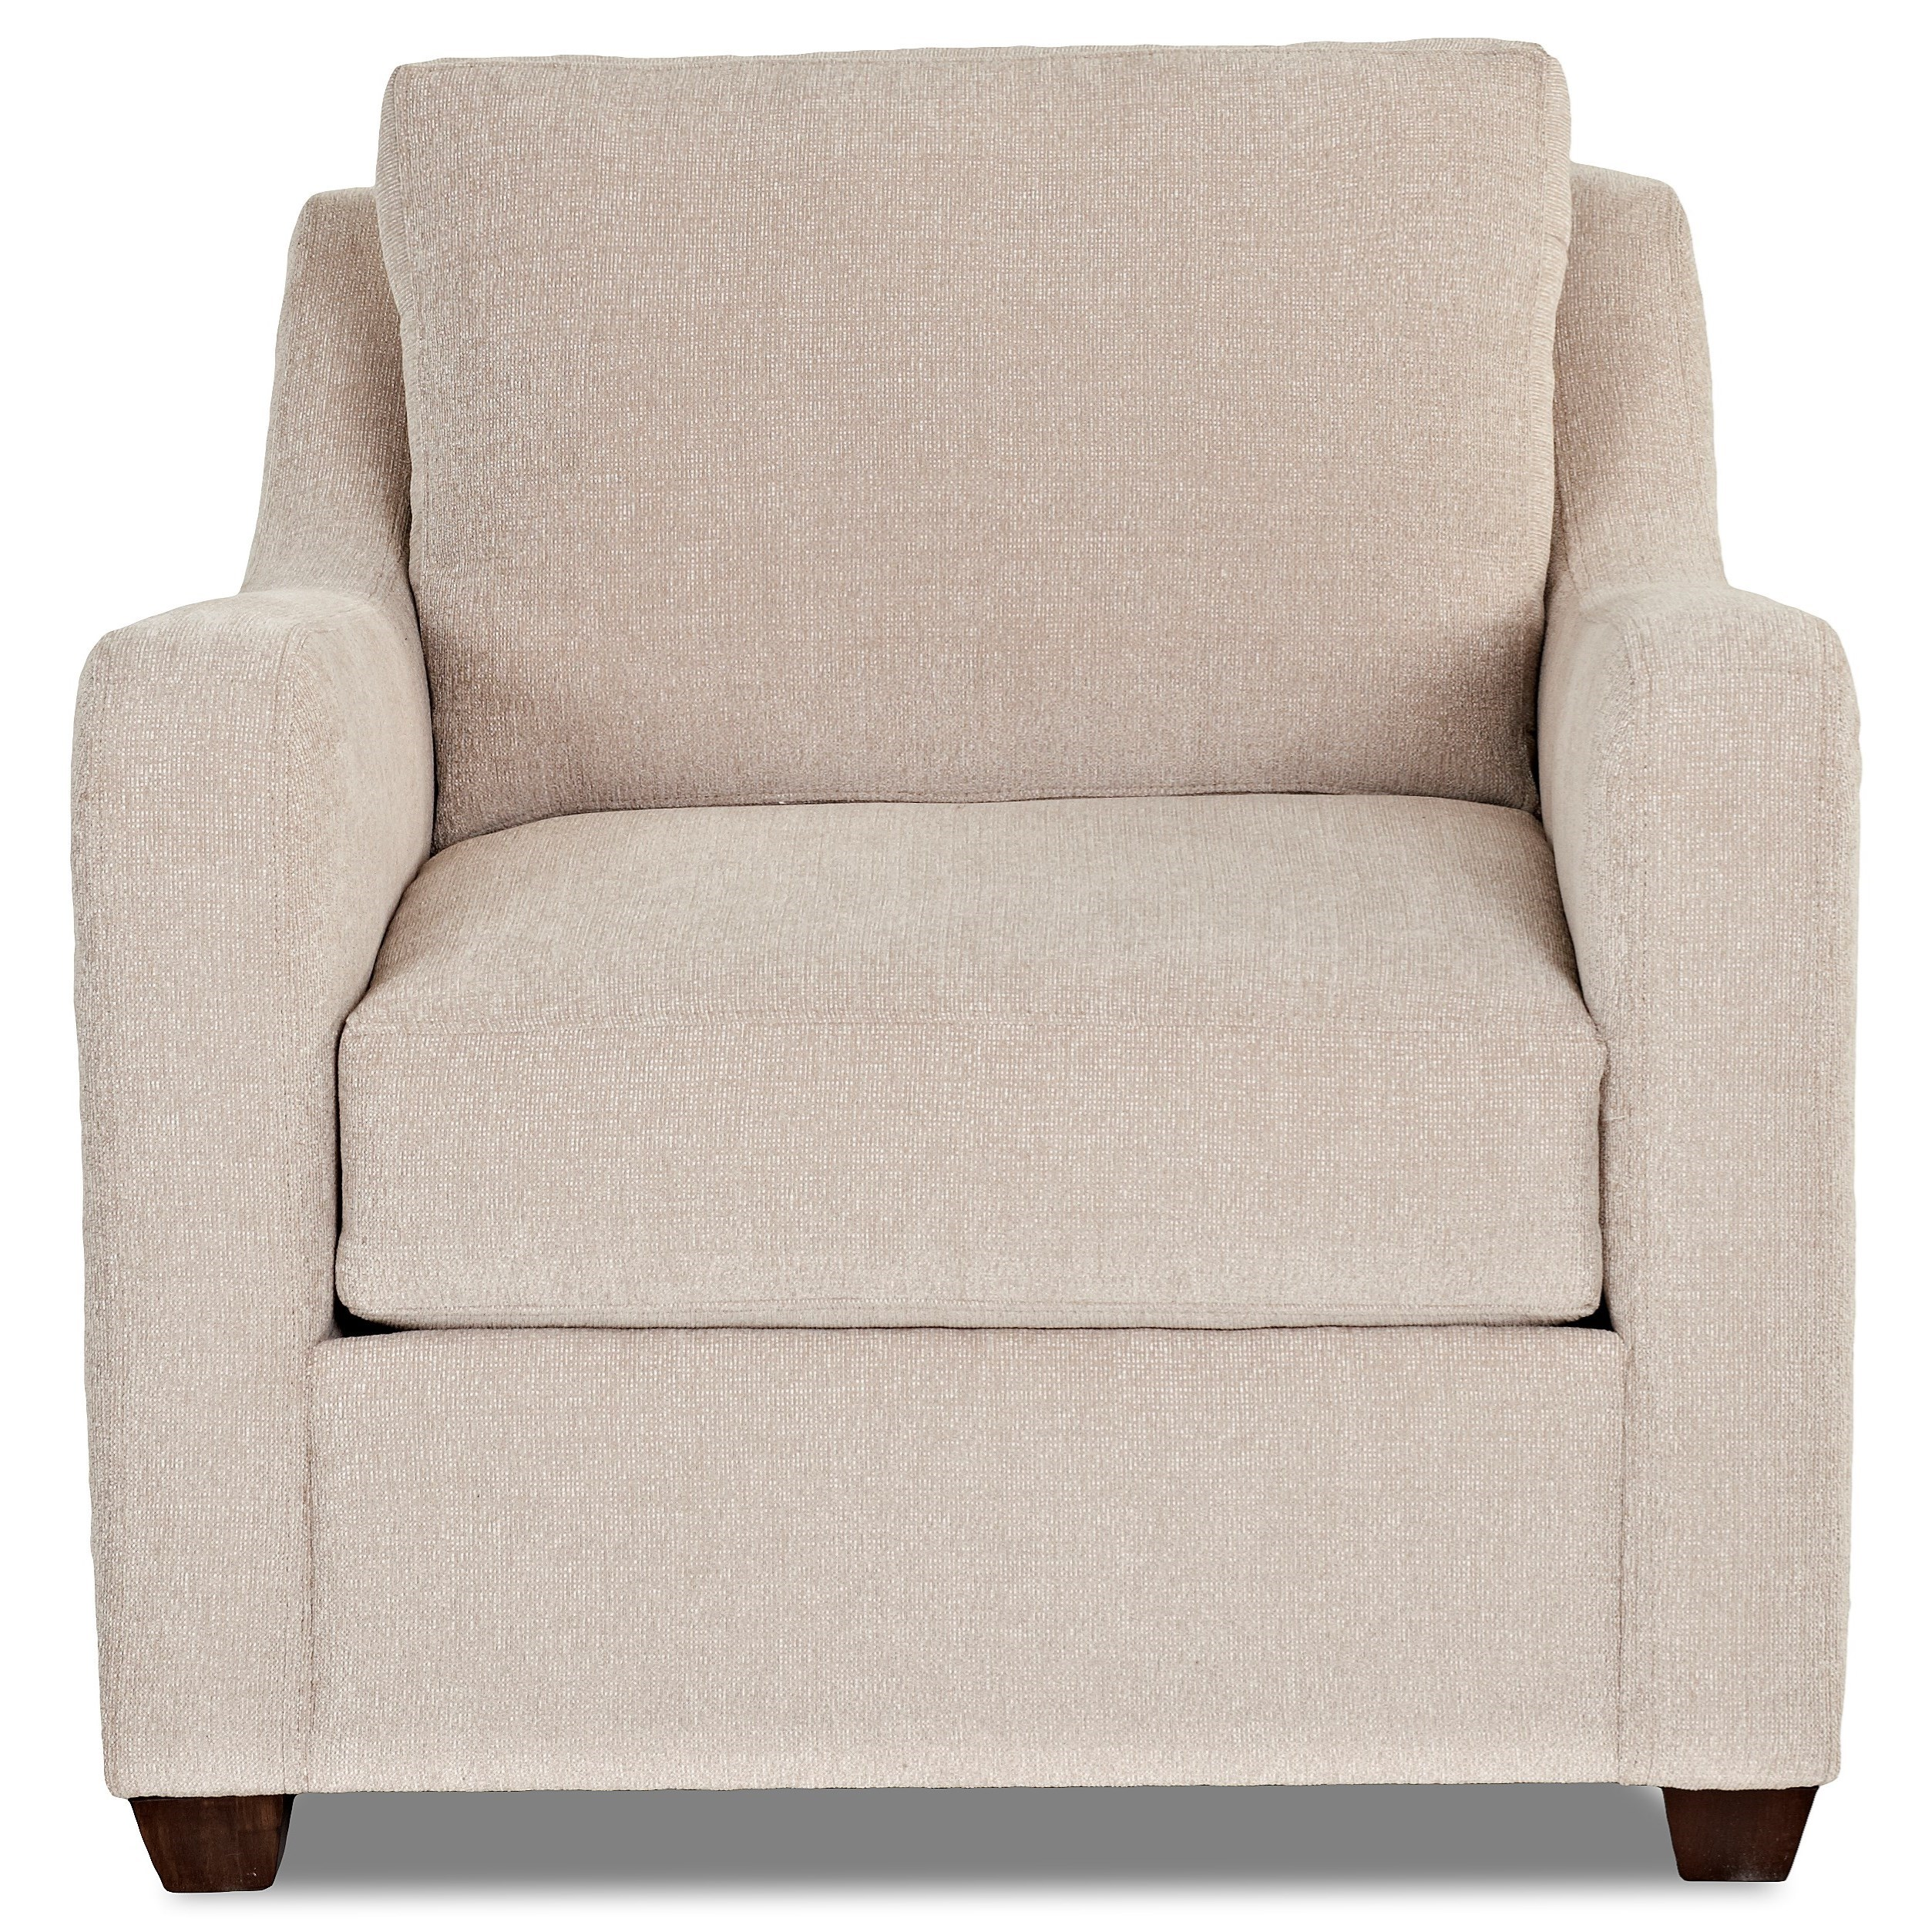 Klaussner Greer Chair - Item Number: K29200 C-Theory Platinum